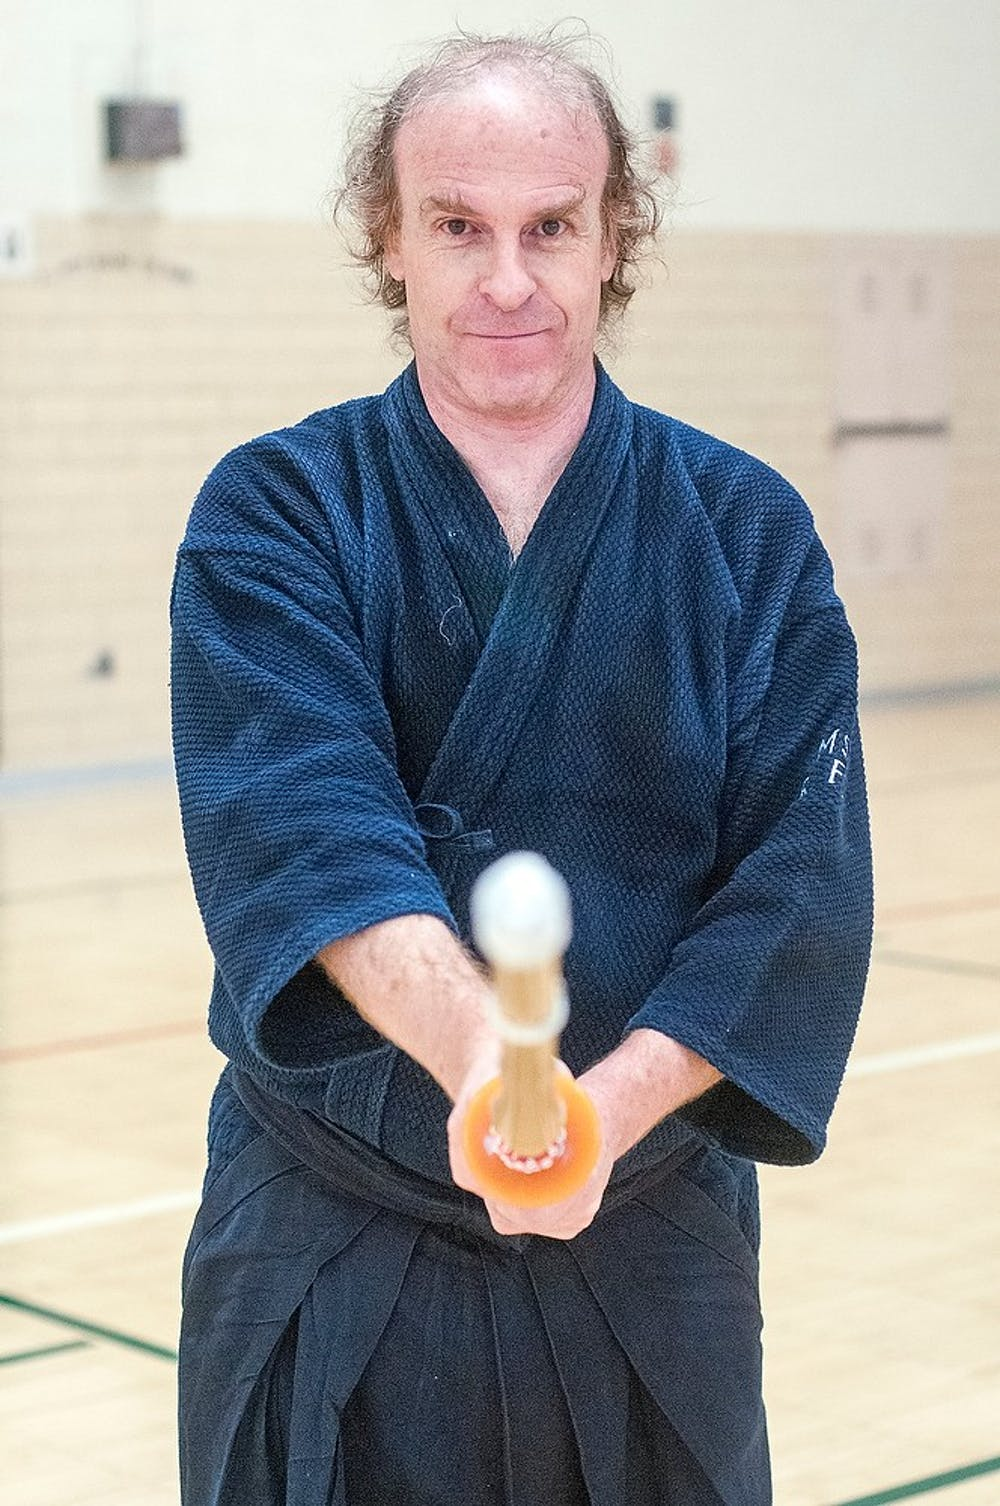 <p>MSU alumn and Senior Physicist at the National Superconducting Cyclotron Laboratory Ron Fox poses for a portrait with his shinai Feb. 9, 2015, in the IM Sports-Circle gymnasium. Fox started practicing kendo in college and now volunteers instructing KIN 102M, Kendo I. Kelsey Feldpausch/The State News</p>